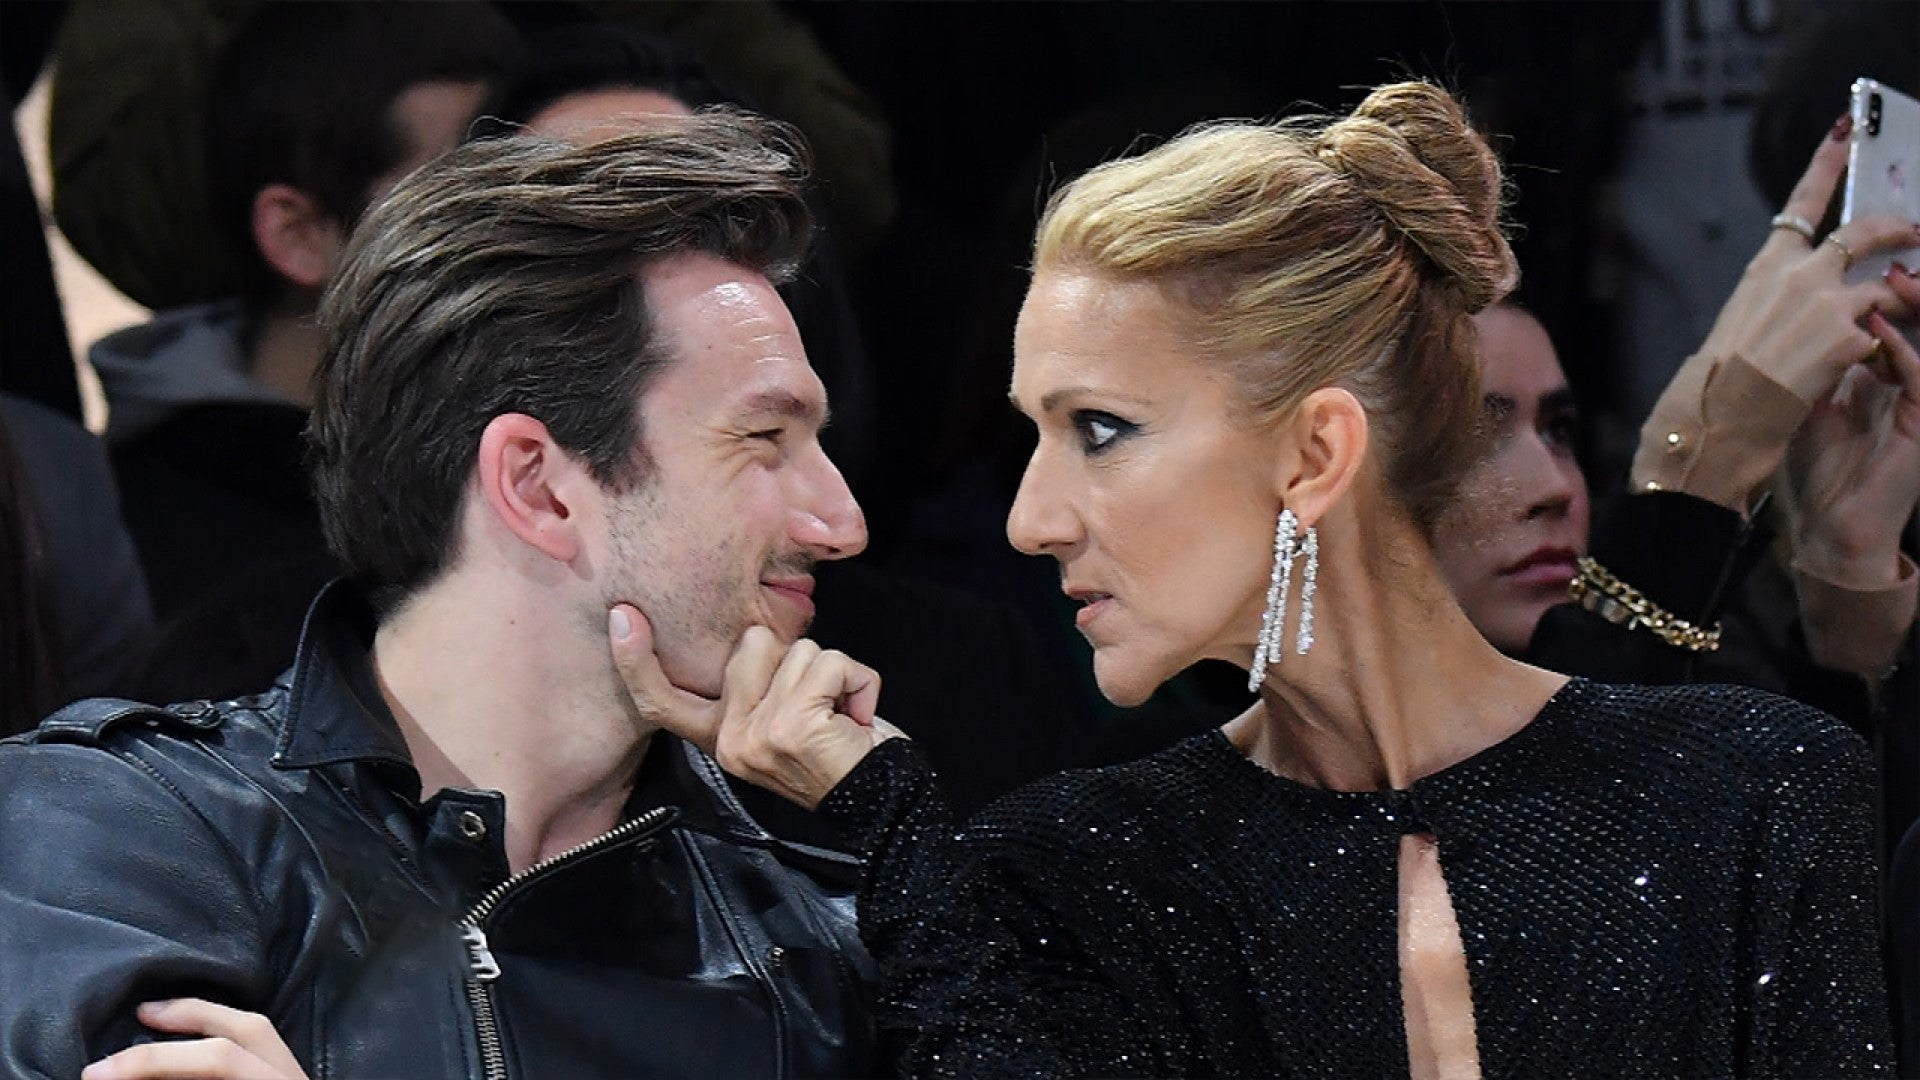 Celine Dion S Team Responds To Report That Dancer Pepe Munoz Has Too Much Influence Over Her Entertainment Tonight